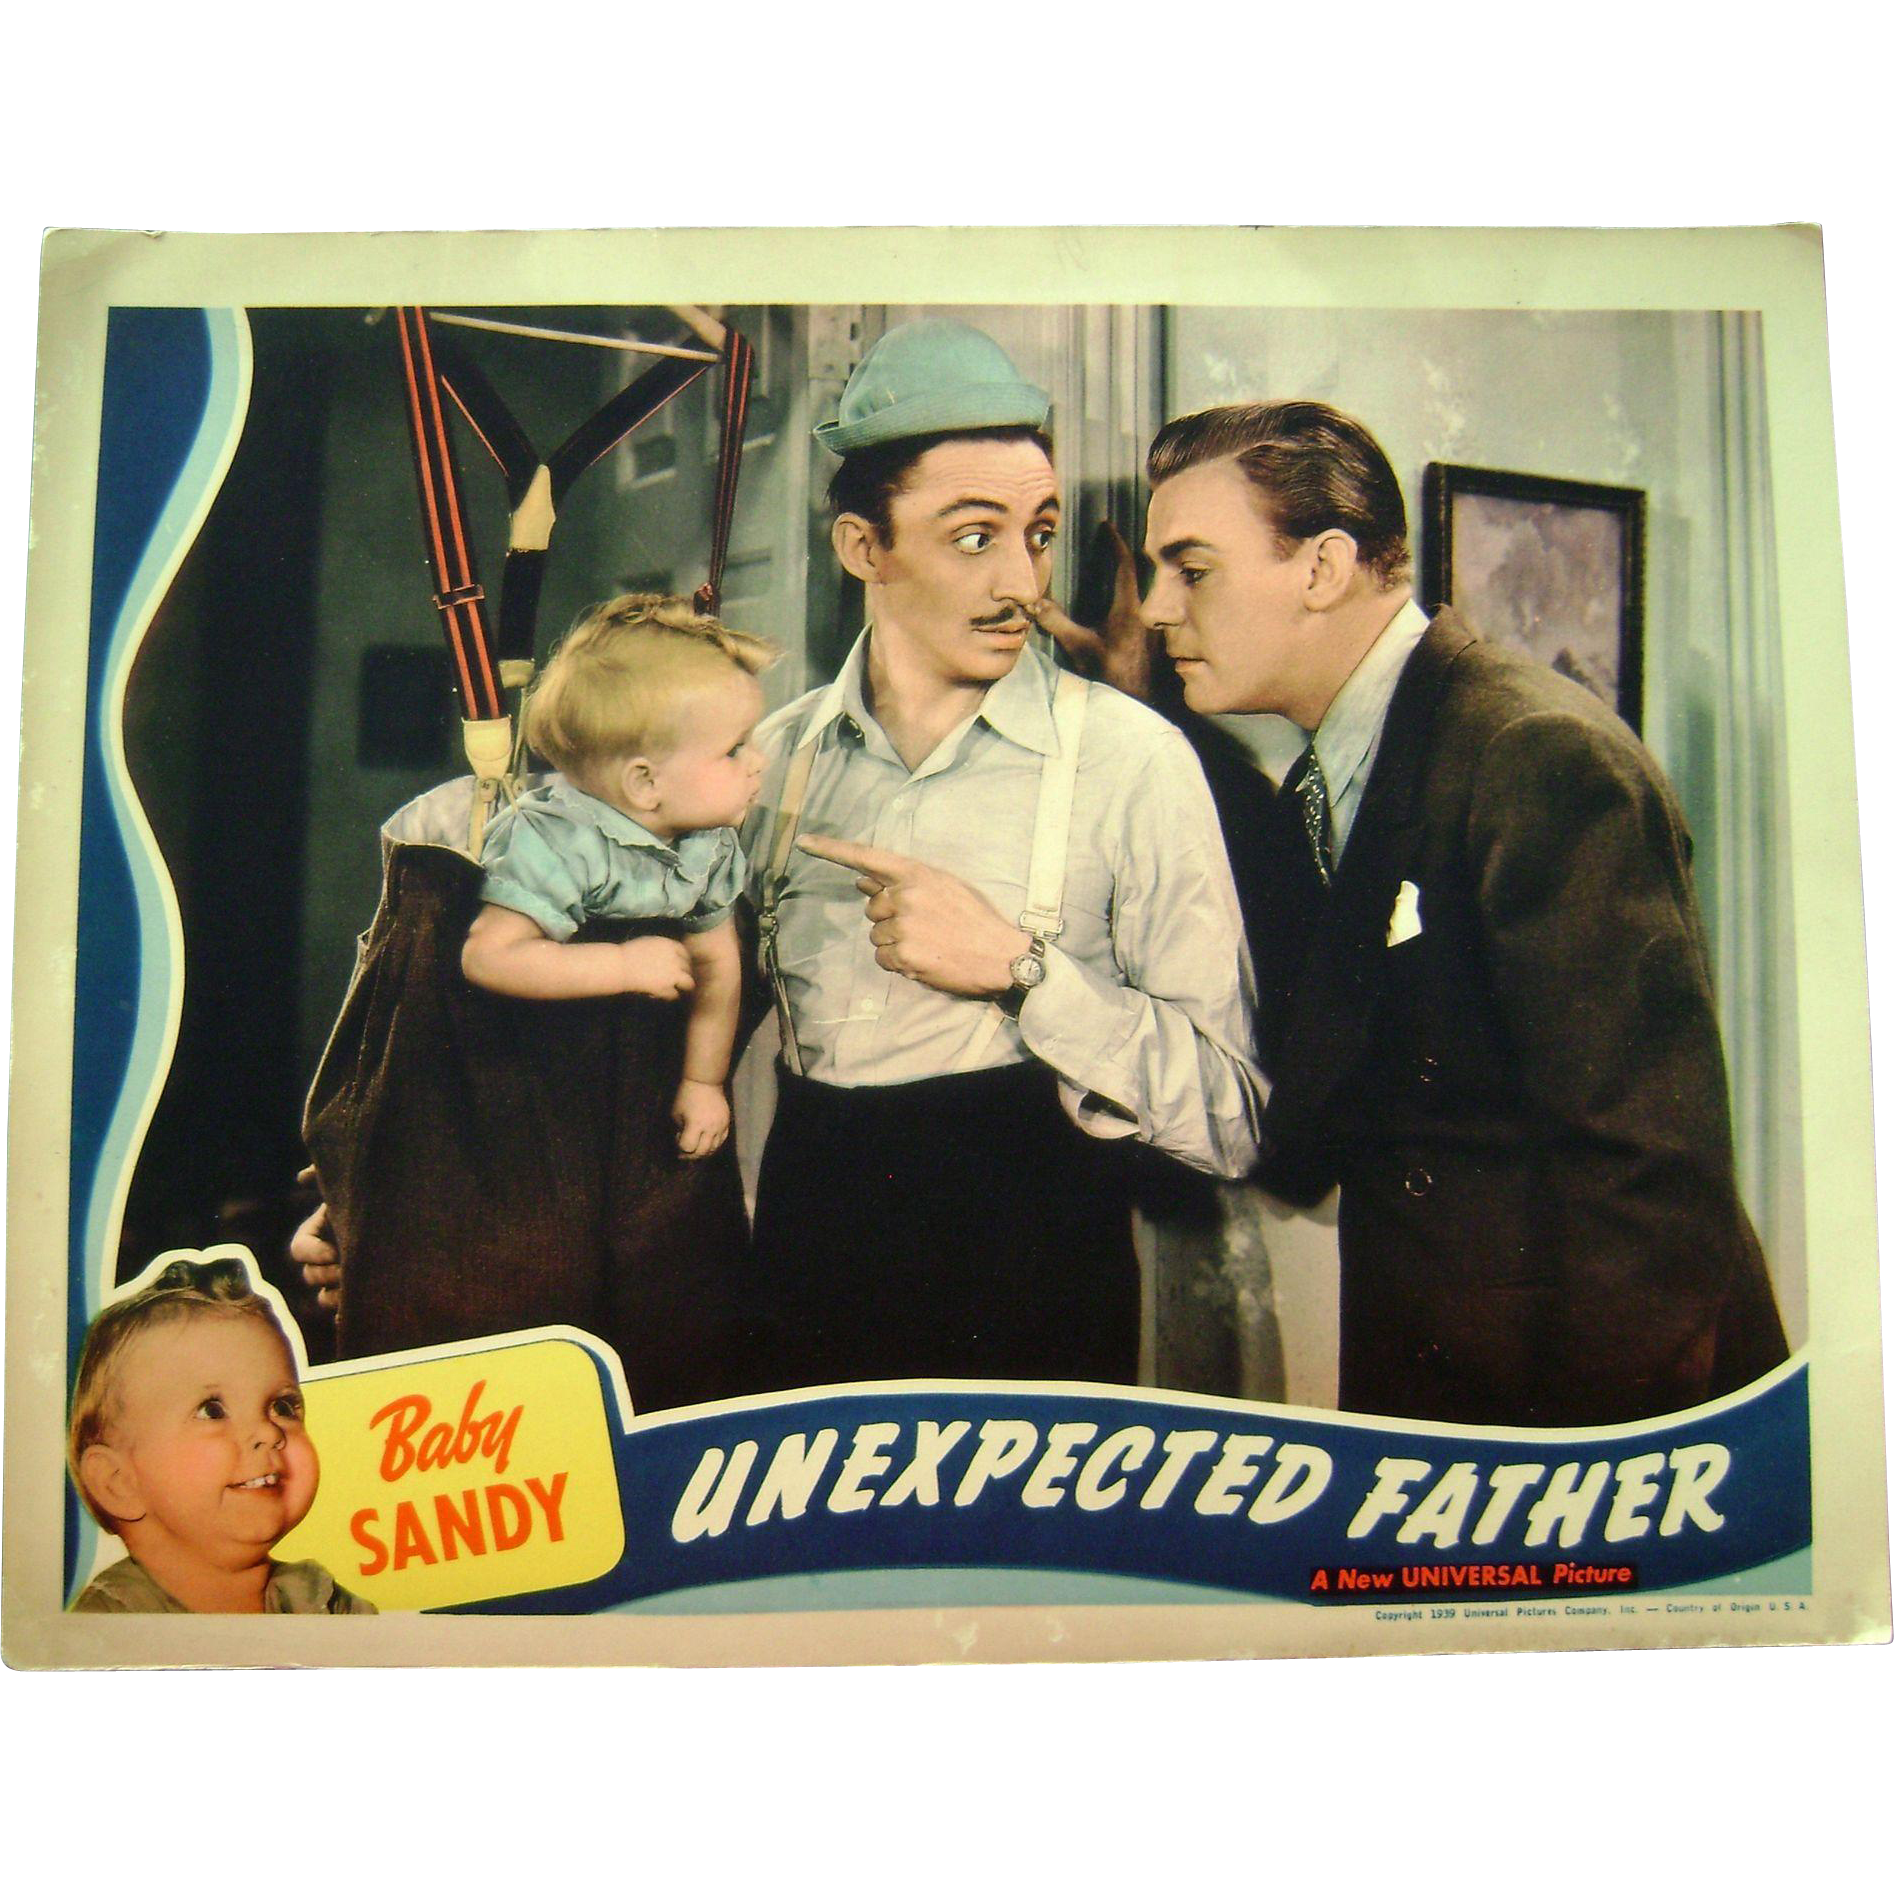 Vintage 1939 Baby Sandy Movie Theater Lobby Card Unexpected Father Dennis OKeefe